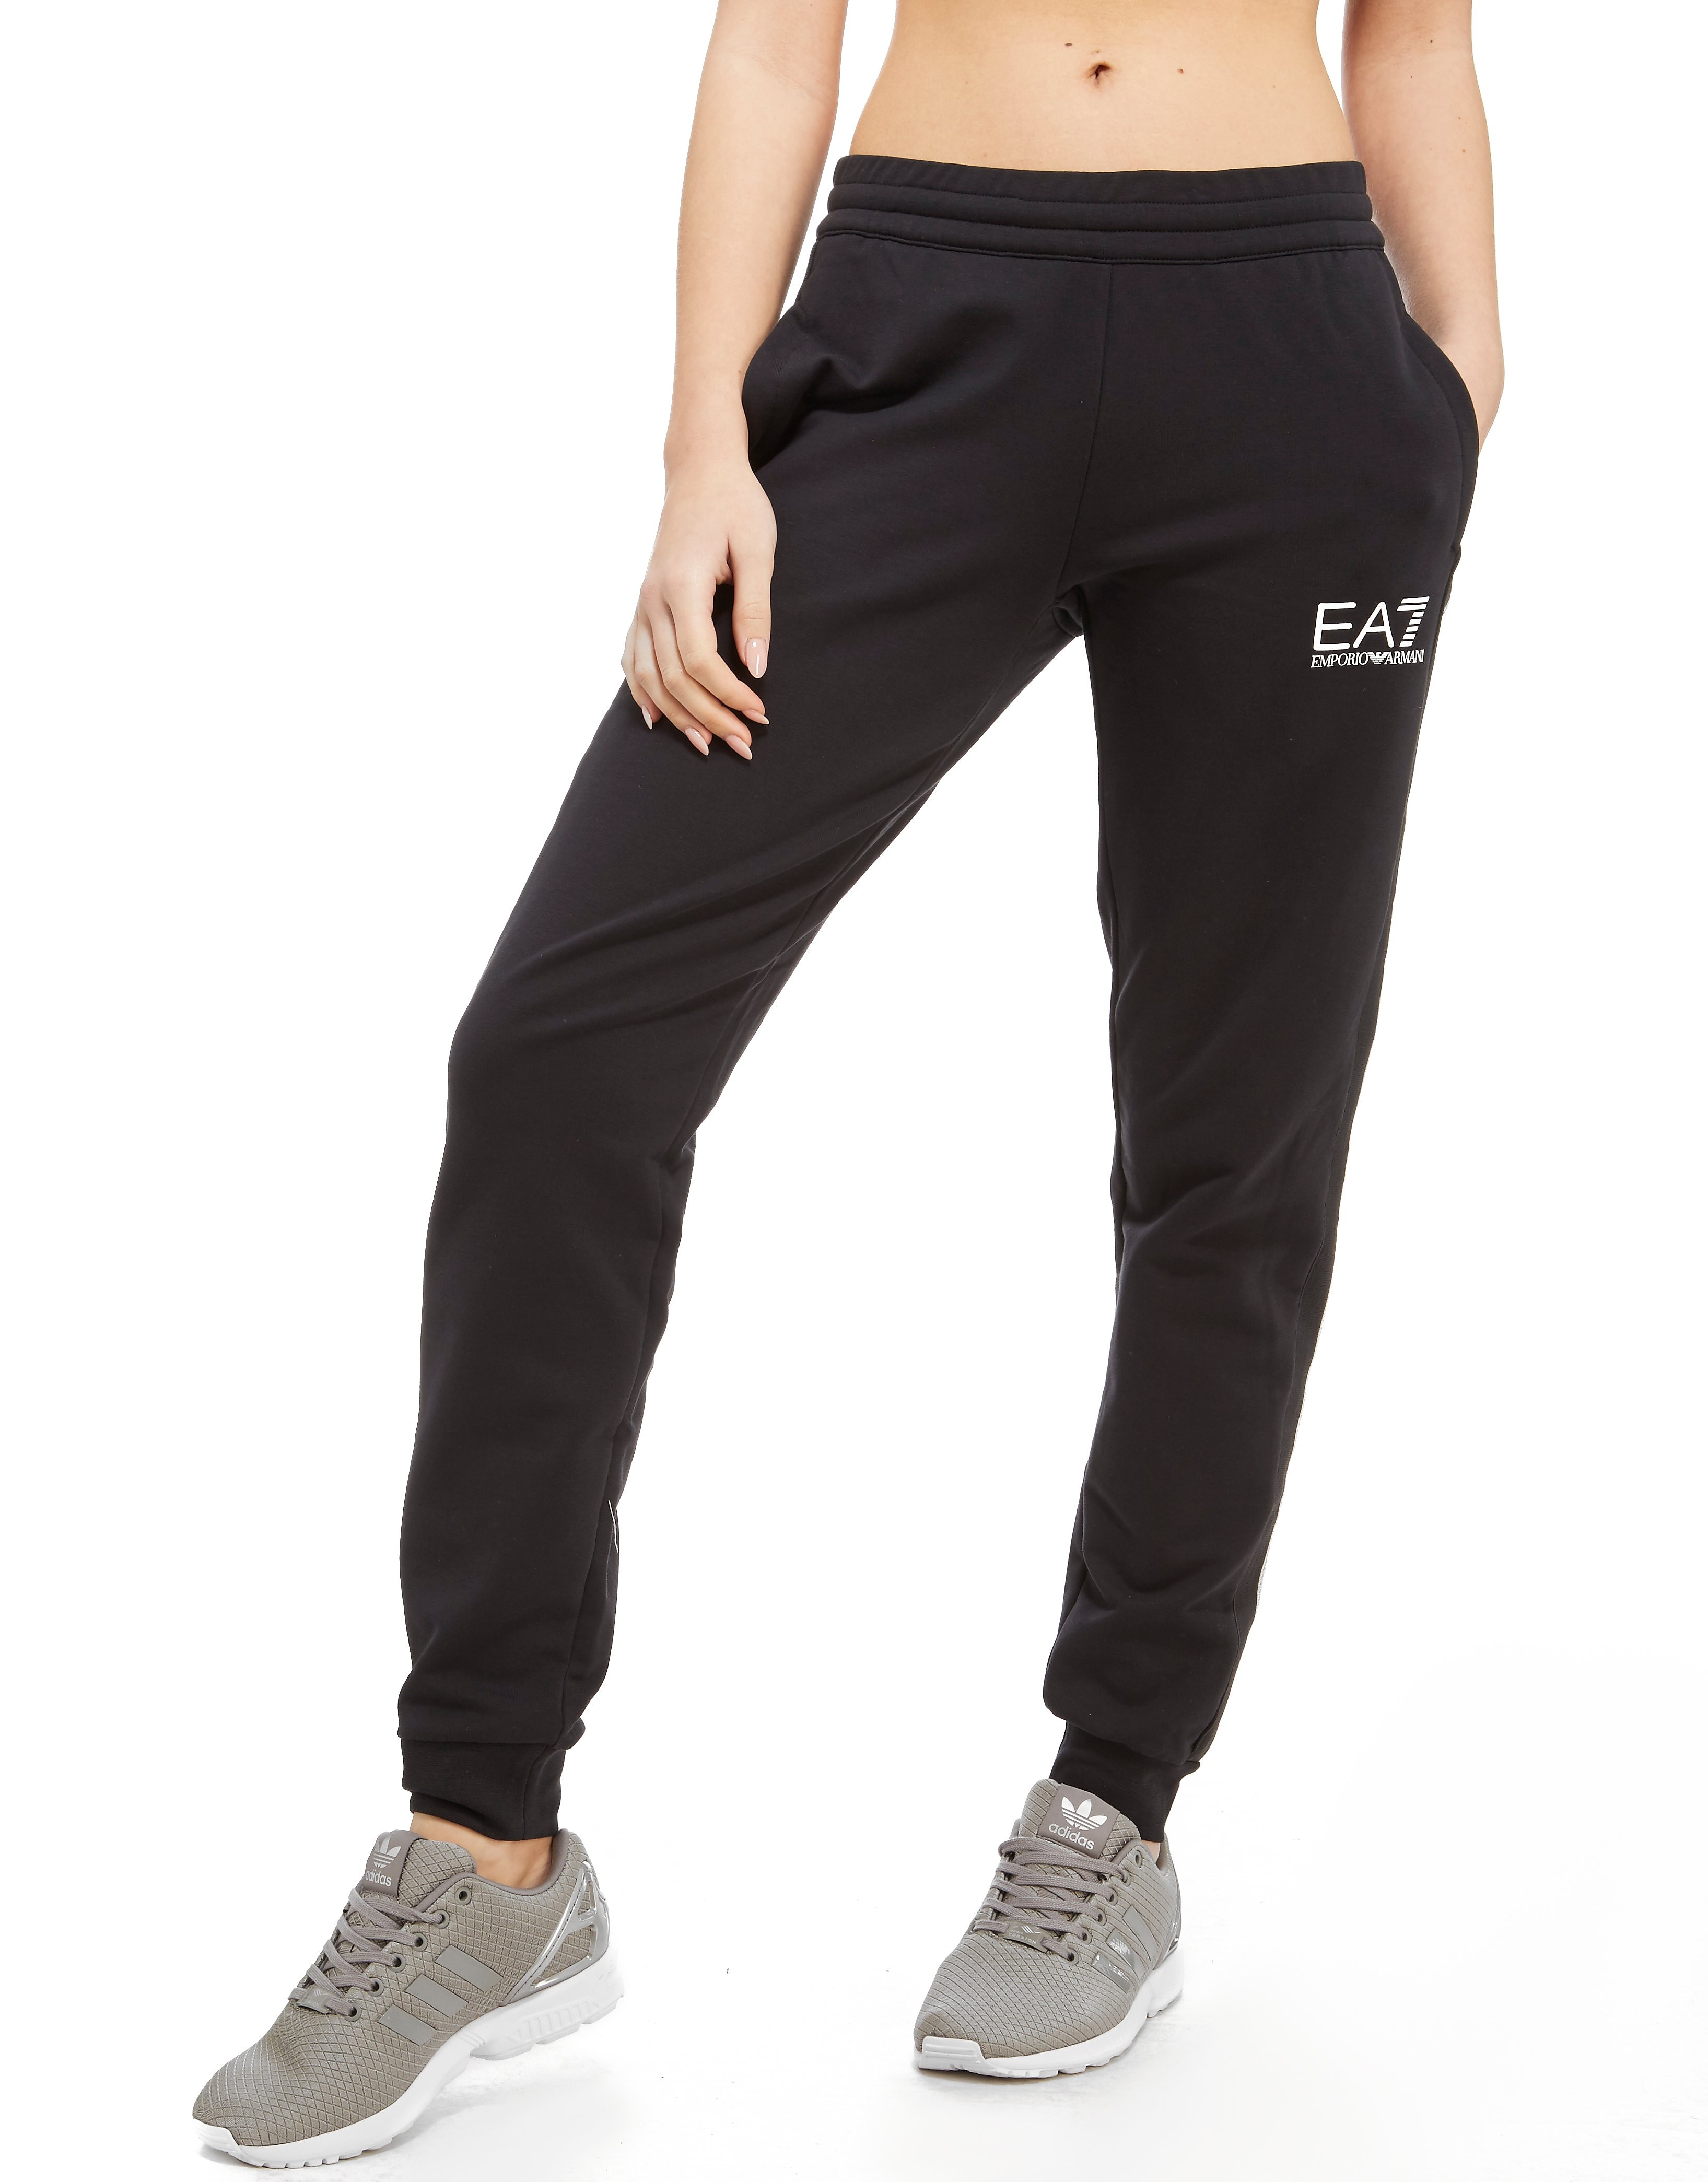 Emporio Armani EA7 Tape Fleece Pants